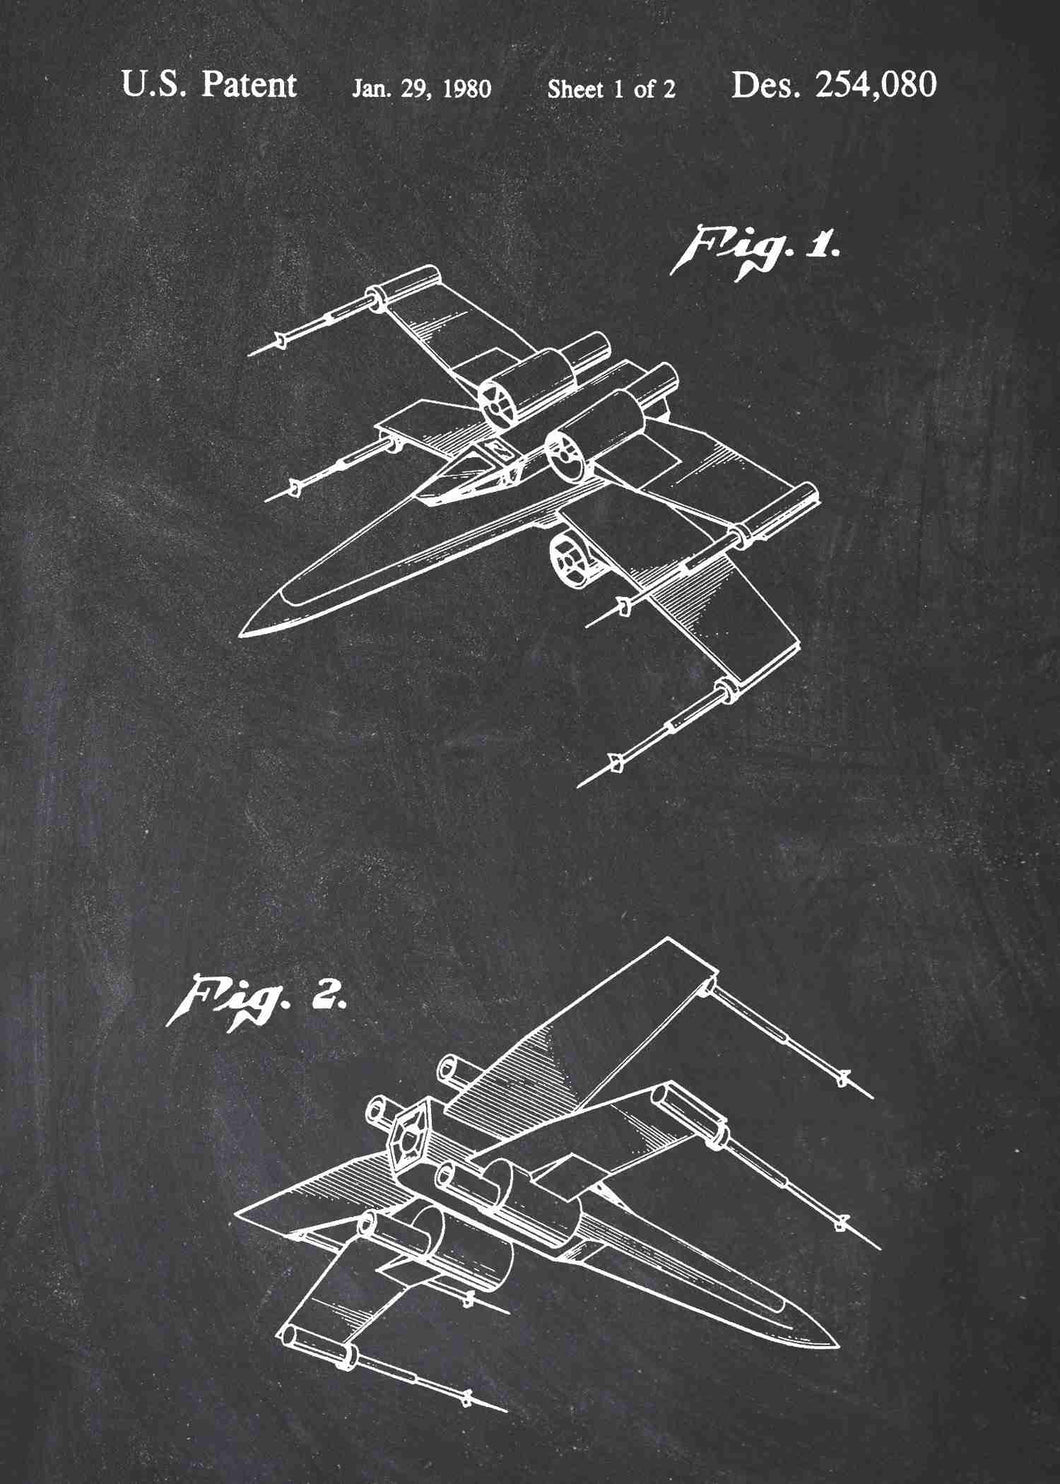 Original X Wing patent from the first trilogy of the star wars series. This star wars poster is in the style chalkboard